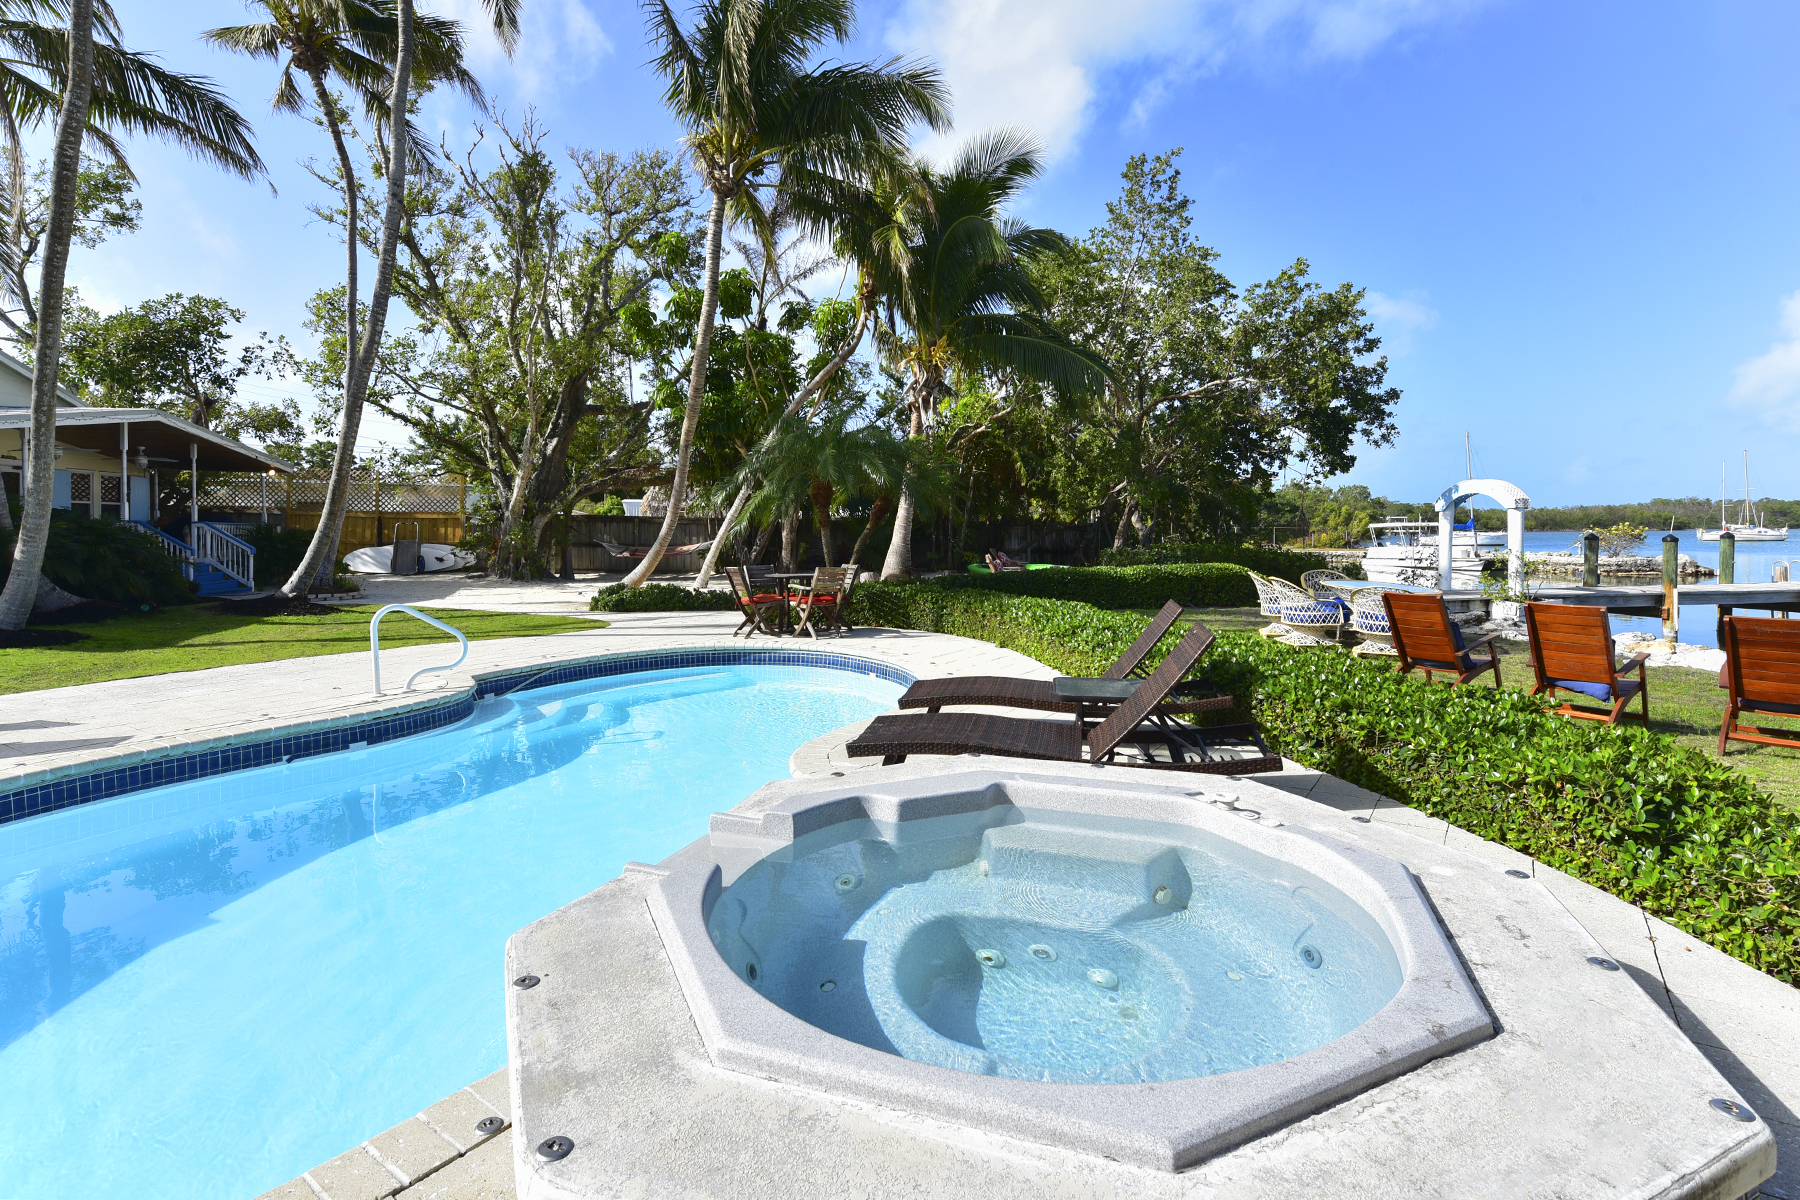 Single Family Home for Rent at Butterfly Haven 81912 Overseas Highway Islamorada, Florida 33036 United States